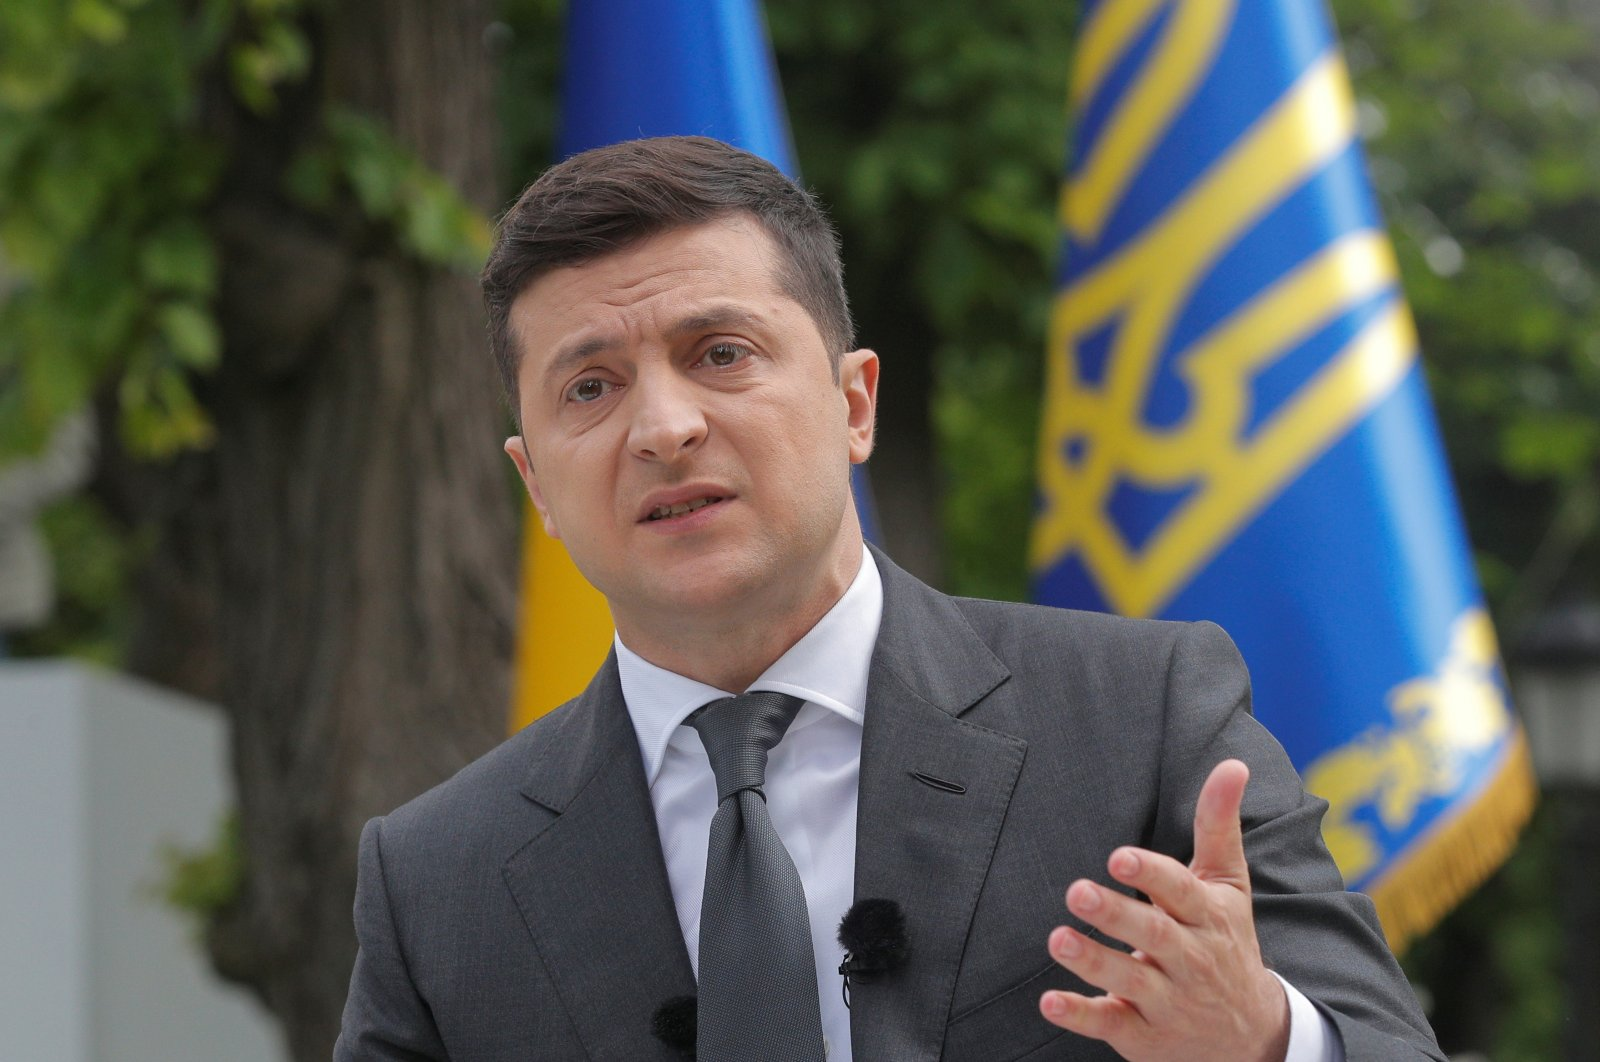 Ukrainian President Volodymyr Zelenskiy gestures during an open-air news conference, one year after his inauguration, amid the COVID-19 outbreak, Kyiv, Ukraine, May 20, 2020. (Reuters Photo)